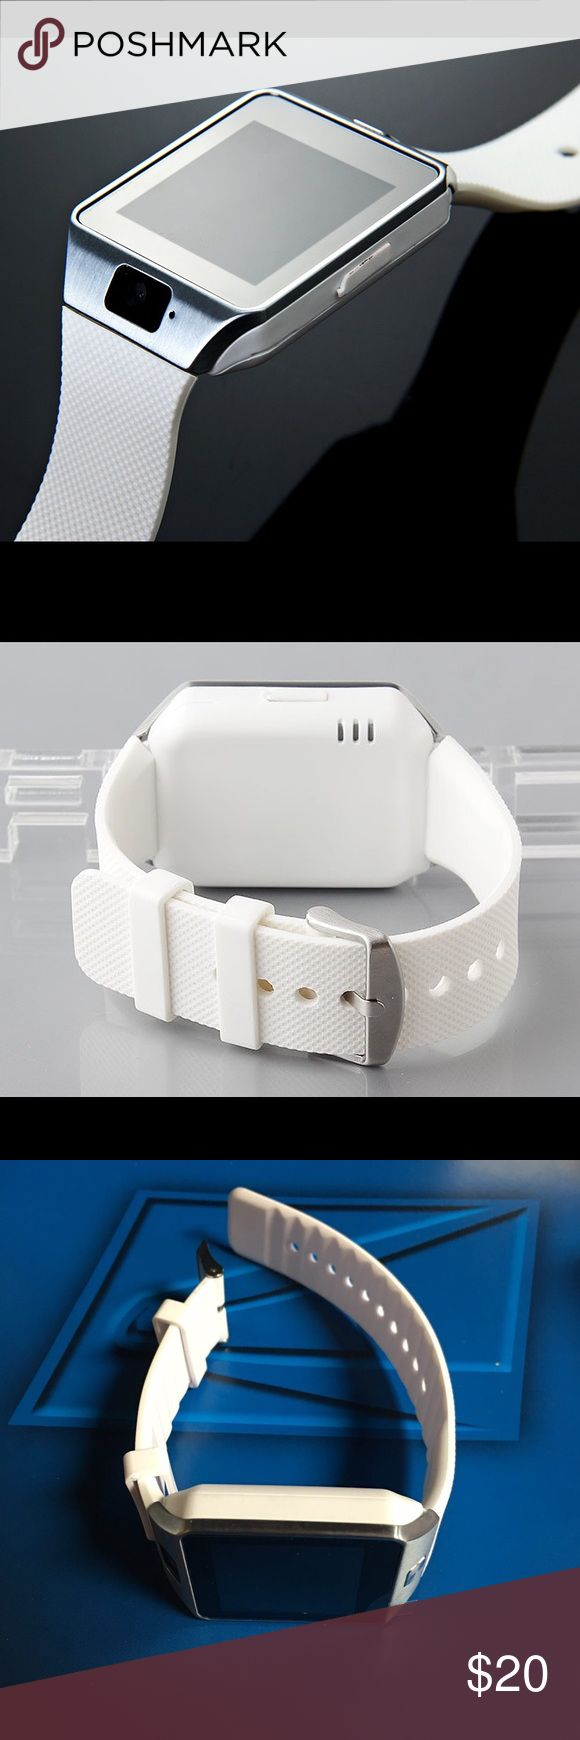 Luxurious Smart Watch • Compatible with iPhone and Android operating systems. • SIM Card: Single SIM Card (Micro SIM Card) Can be as a phone • Bluetooth: Bluetooth 3.0 • Storage: RAM 128M, ROM 64M; External memory: Support TF card up to 32GB • Display: 1.56 inch TFT LCD, 240 x 240 pixels • Camera: 0.3M • Music: Support • Picture Format: JPEG, GIF, BMP, PNG • Music Format: MP3, WAV • Languages: English, Spanish, Arabic, Portuguese, Russian Accessories Watches